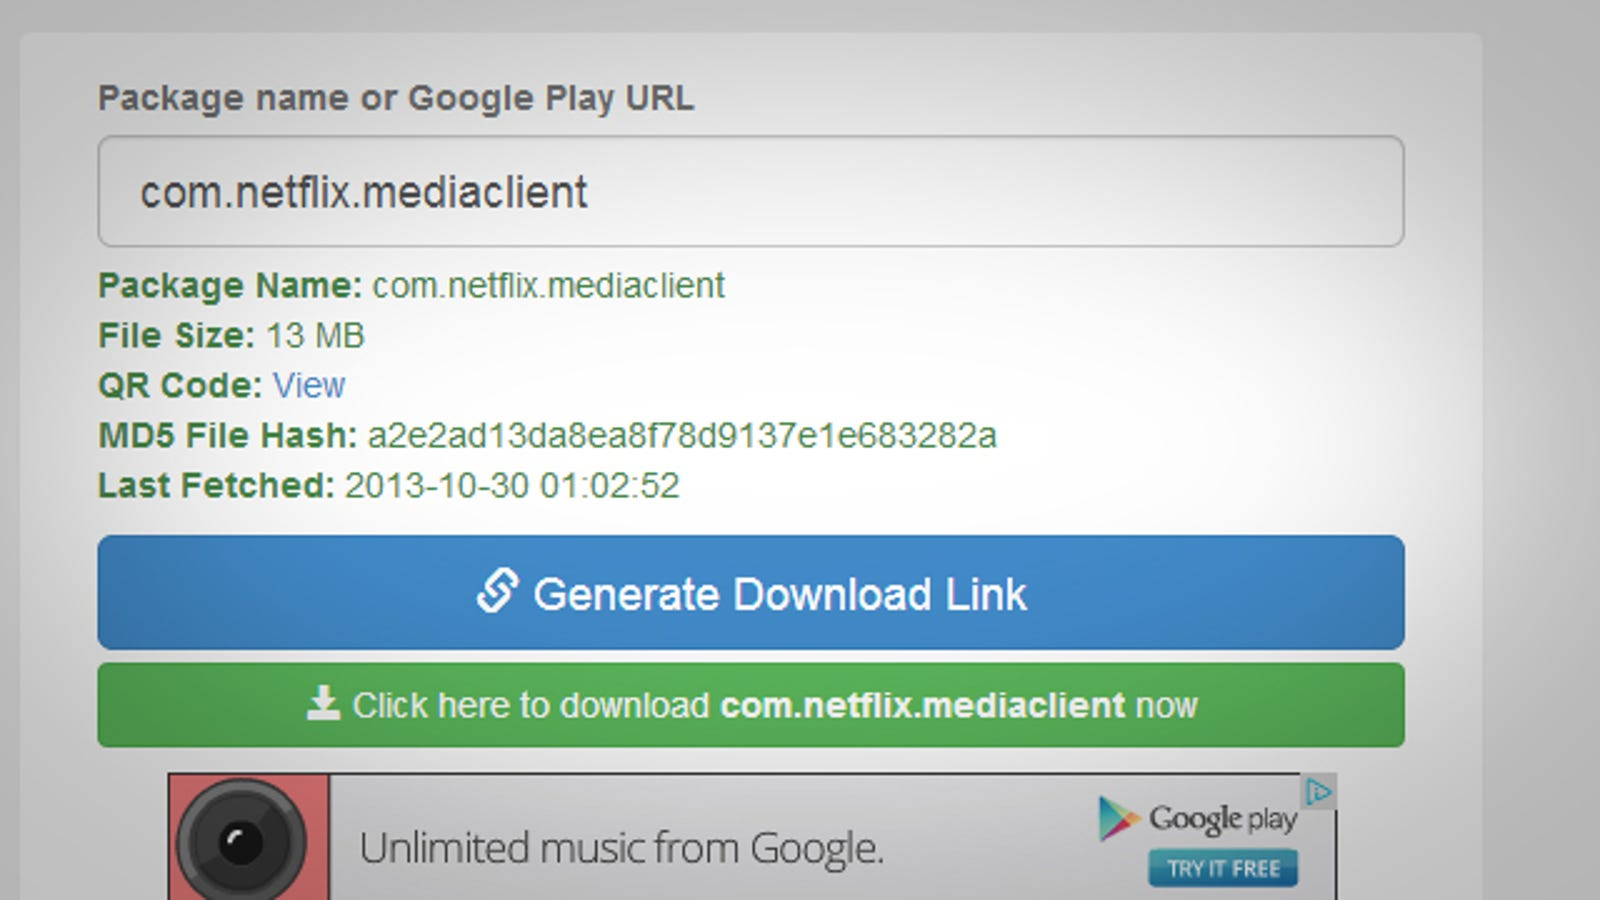 APK Downloader Pulls APK Files Directly From Google Play